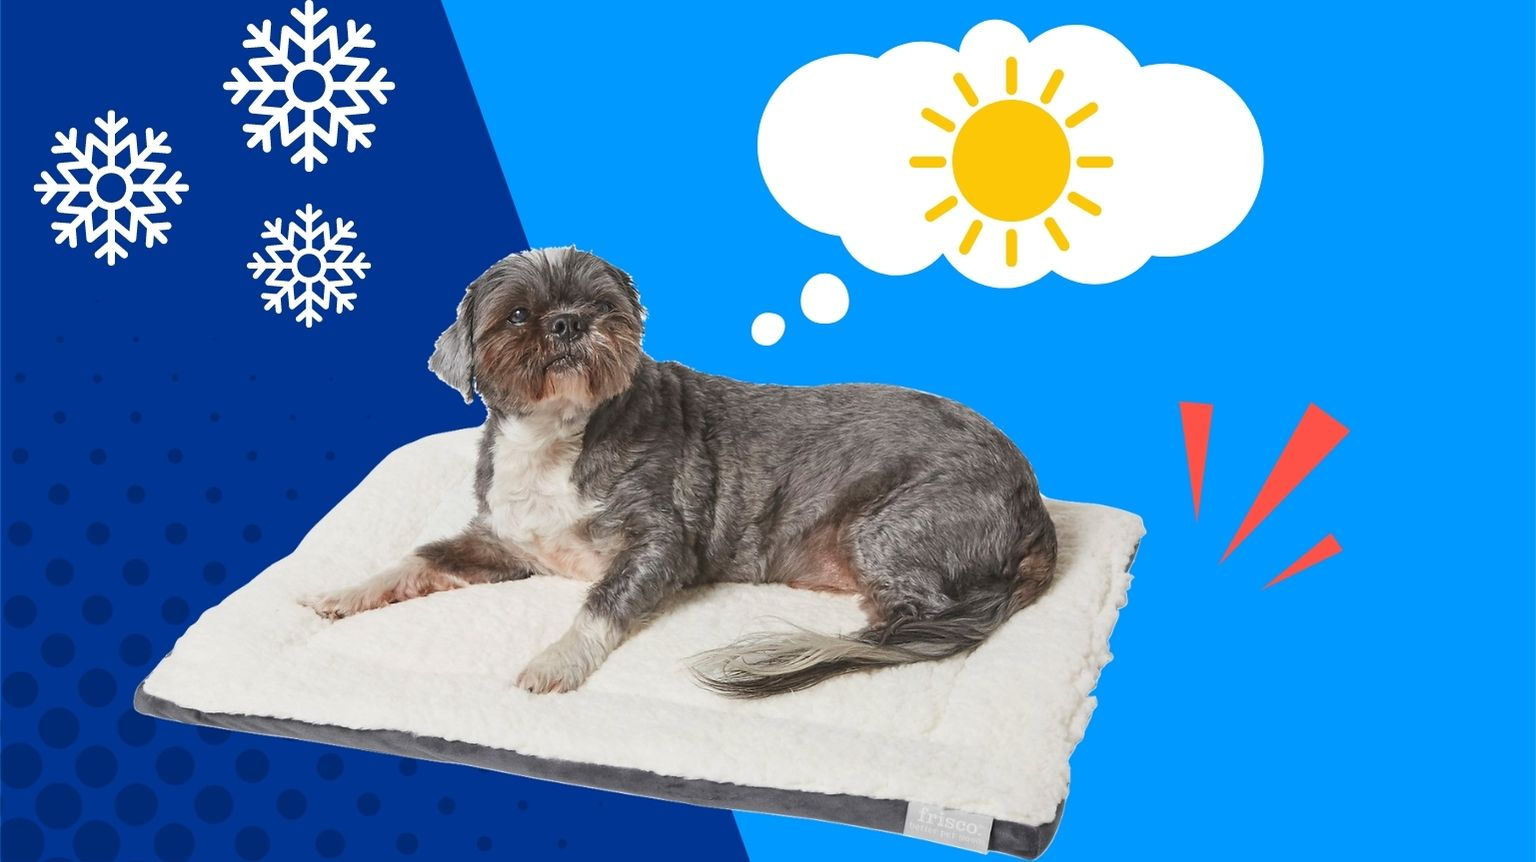 Cold dog on a heated dog bed.